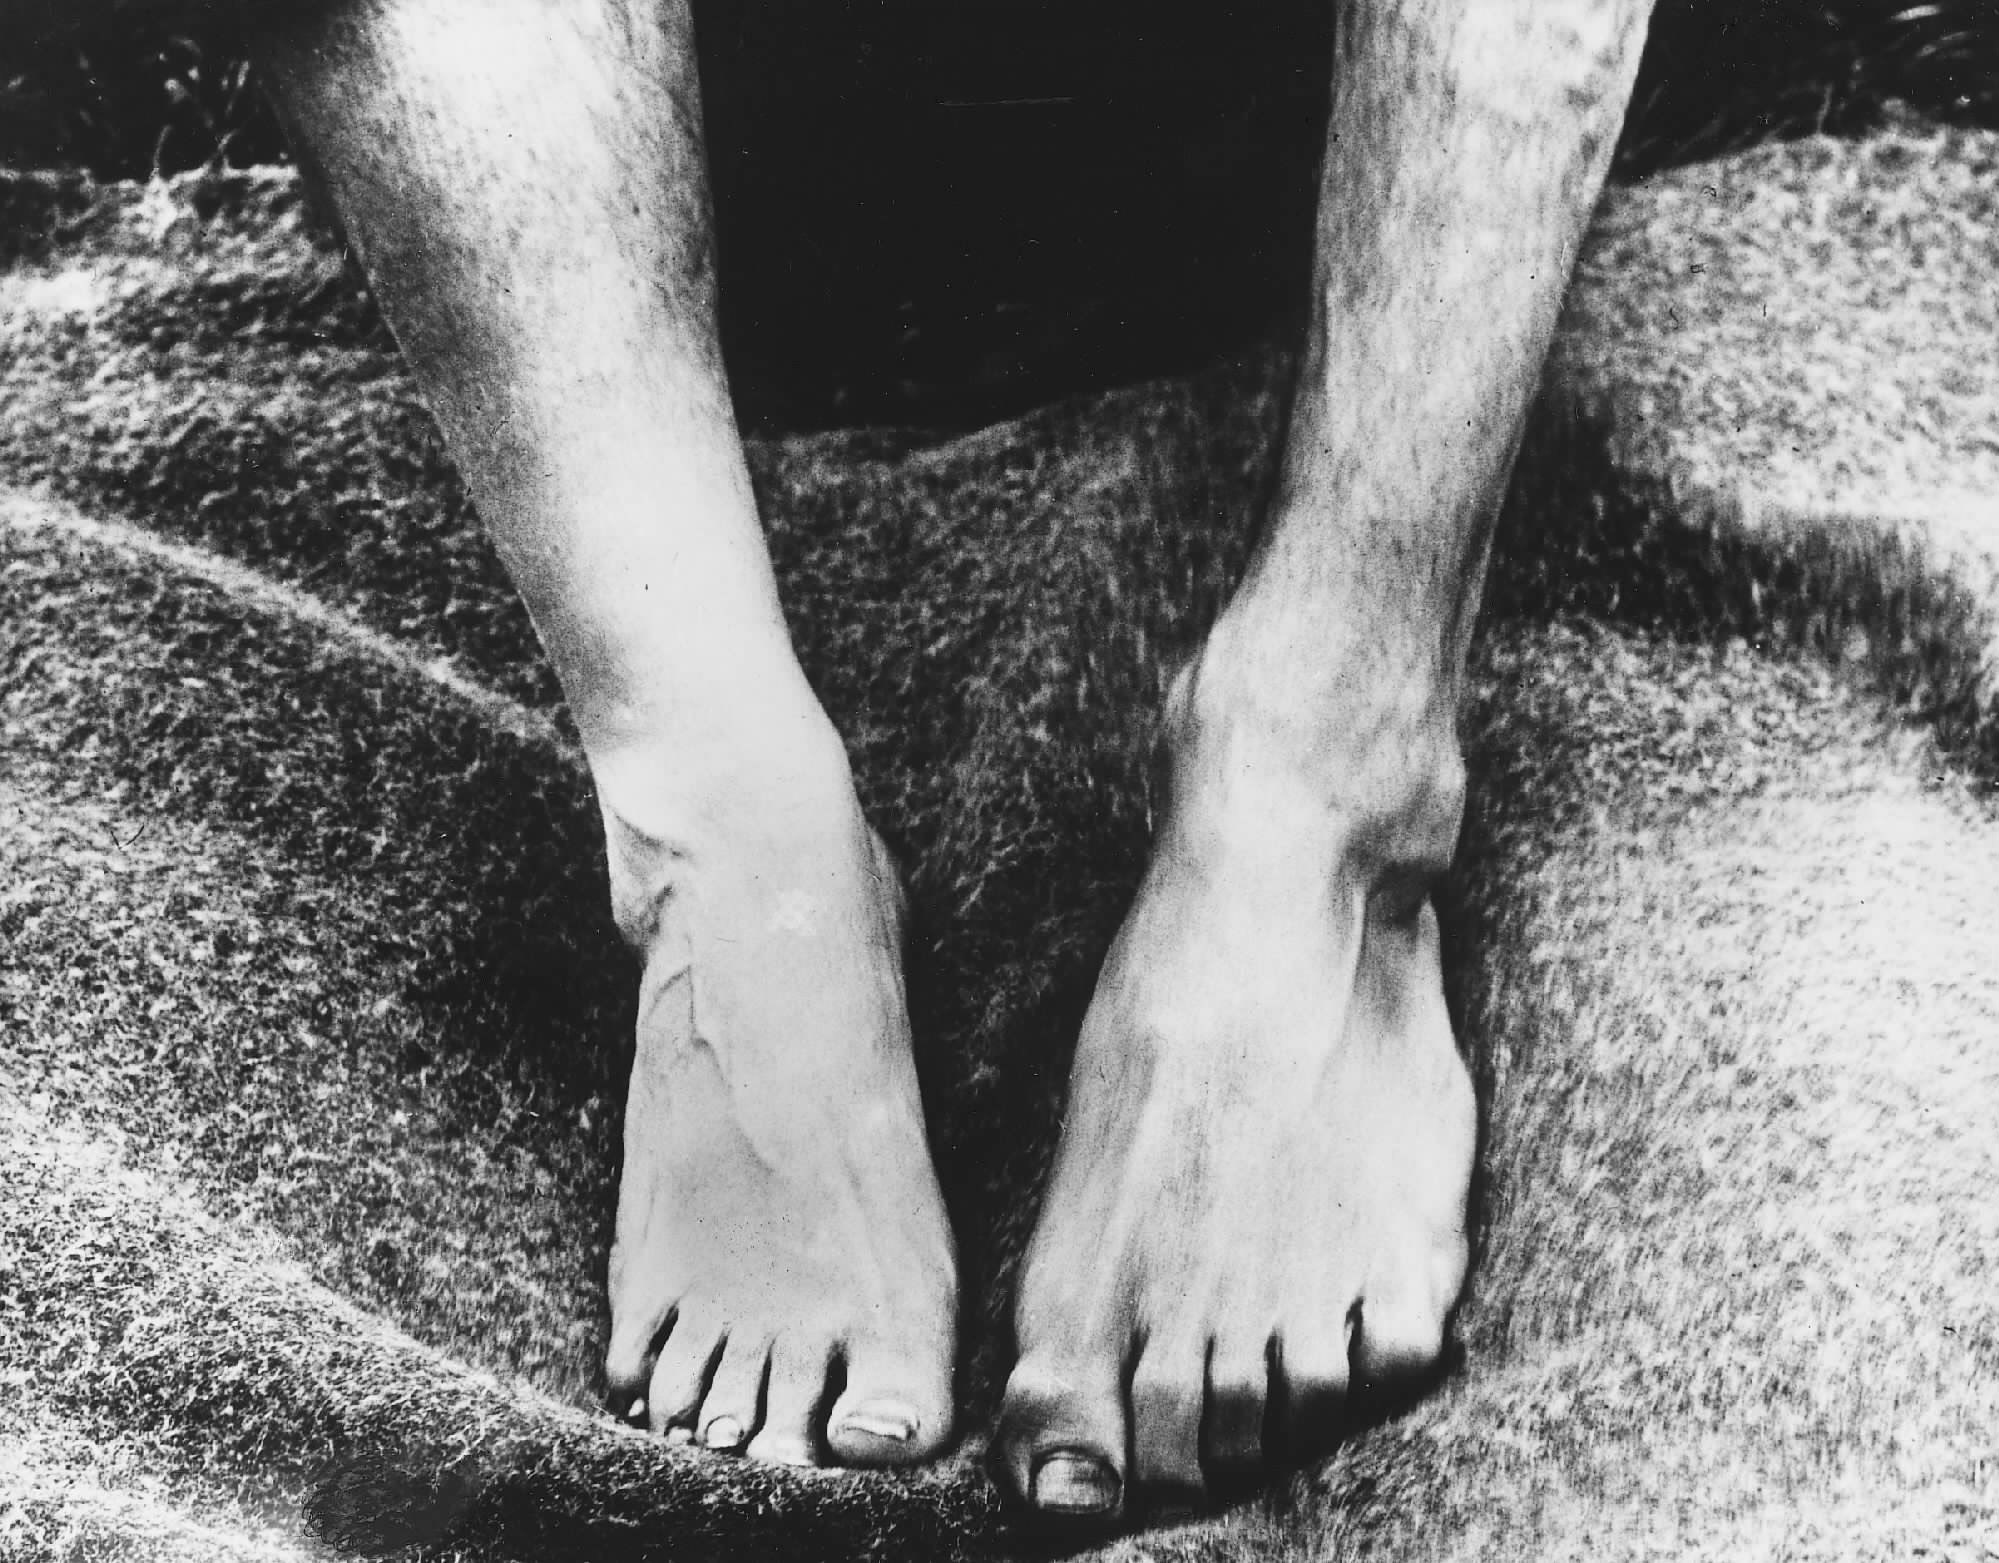 Fig. 8: Glass plate negative documenting the variances between the feet of an islander (right) and someone from the mainland (left), #43 © National Trust for Scotland, St Kilda.